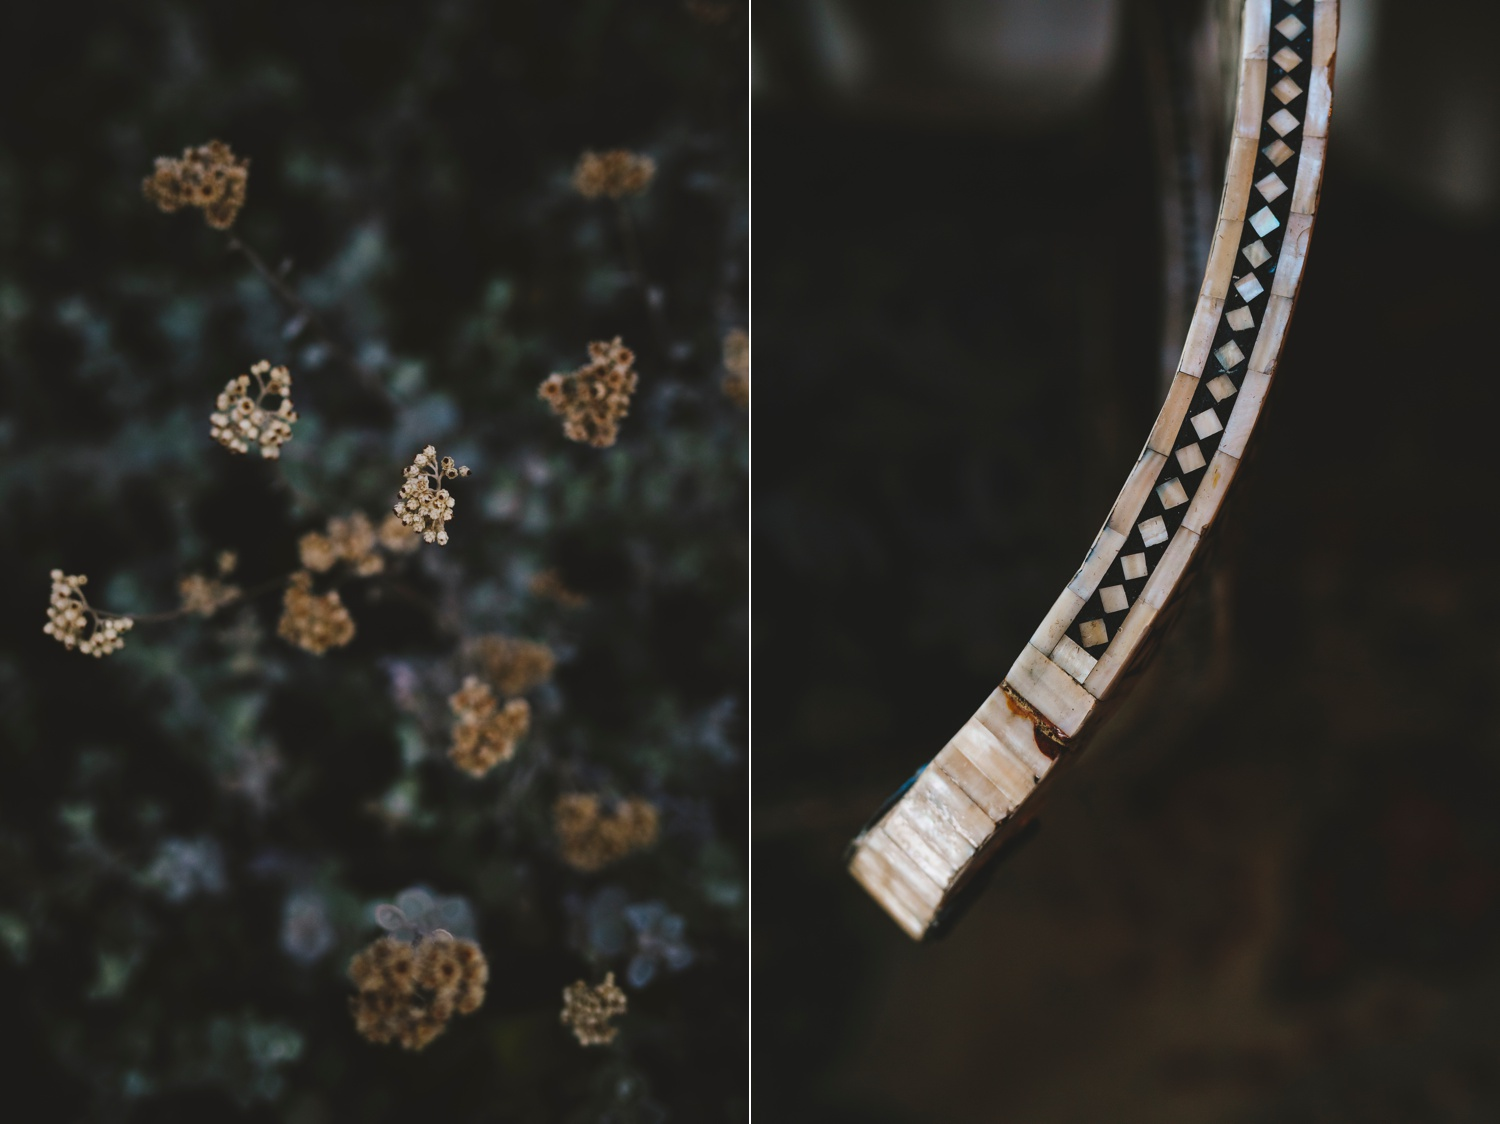 charlie_ray_photography_runaway_romance_elopement_emily_moon_plett_simple_boho_wedding_south_africa_bohemium_0125.jpg